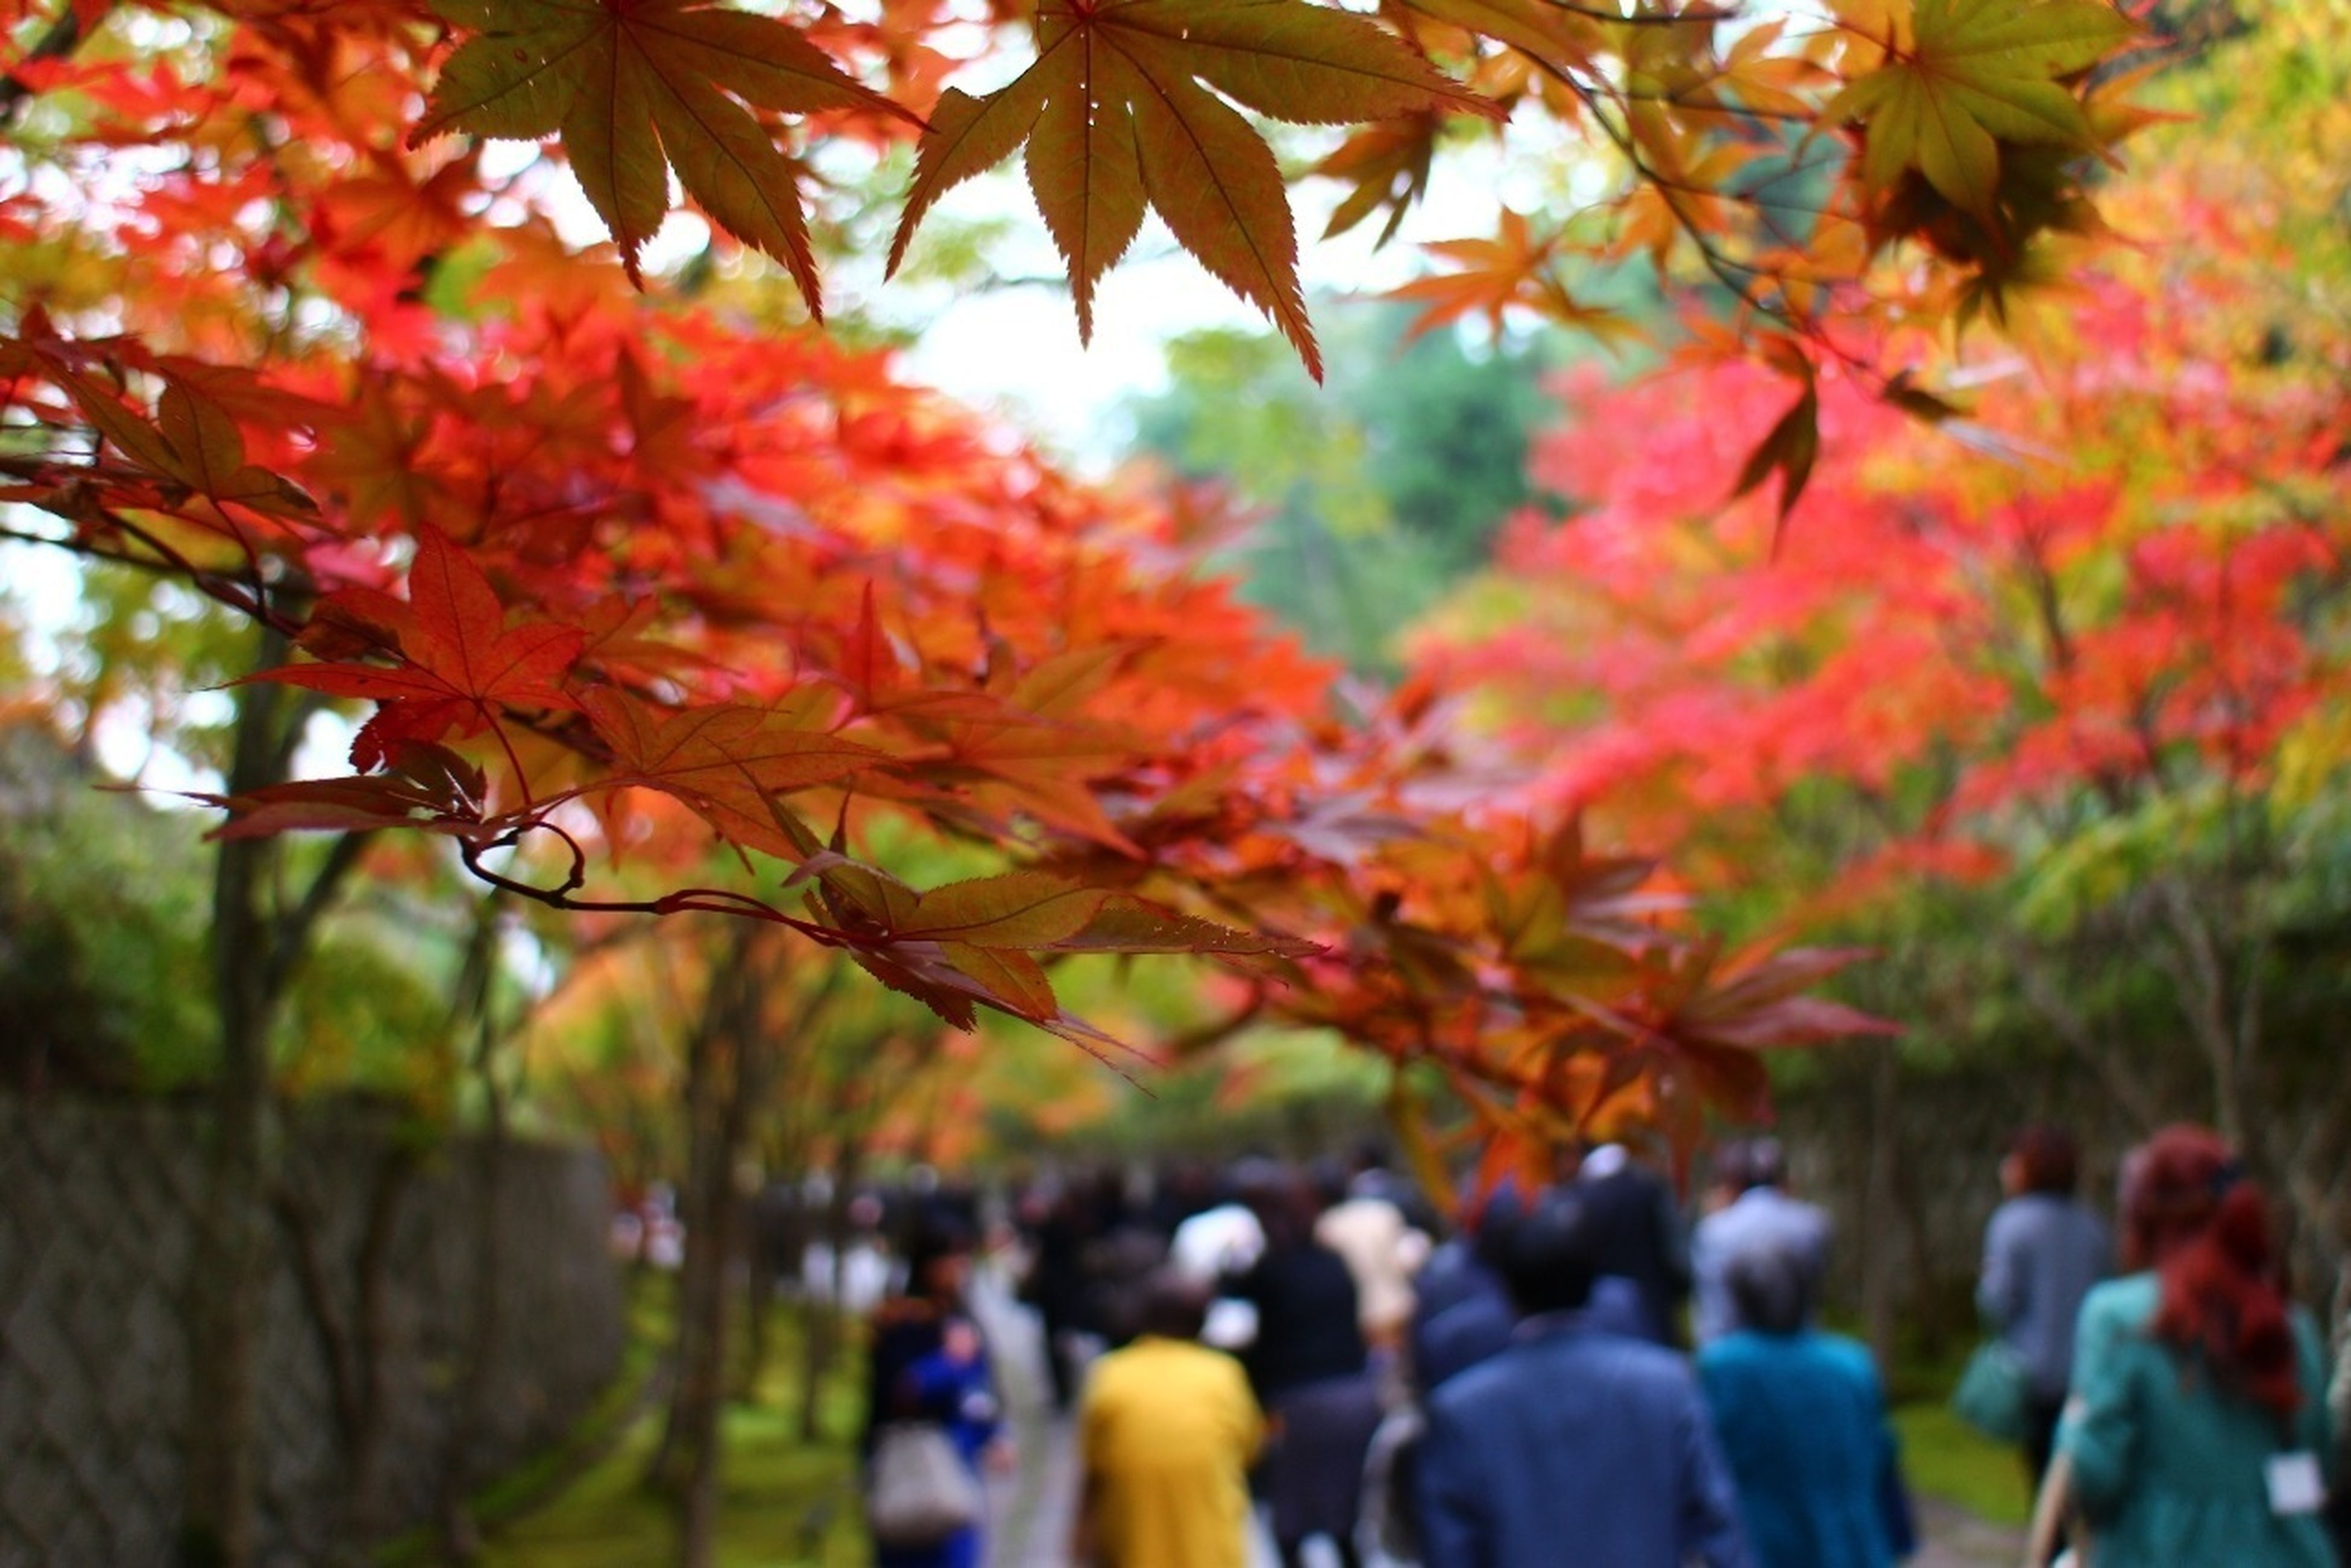 tree, branch, autumn, growth, leaf, lifestyles, leisure activity, park - man made space, nature, person, change, focus on foreground, men, day, large group of people, beauty in nature, outdoors, season, selective focus